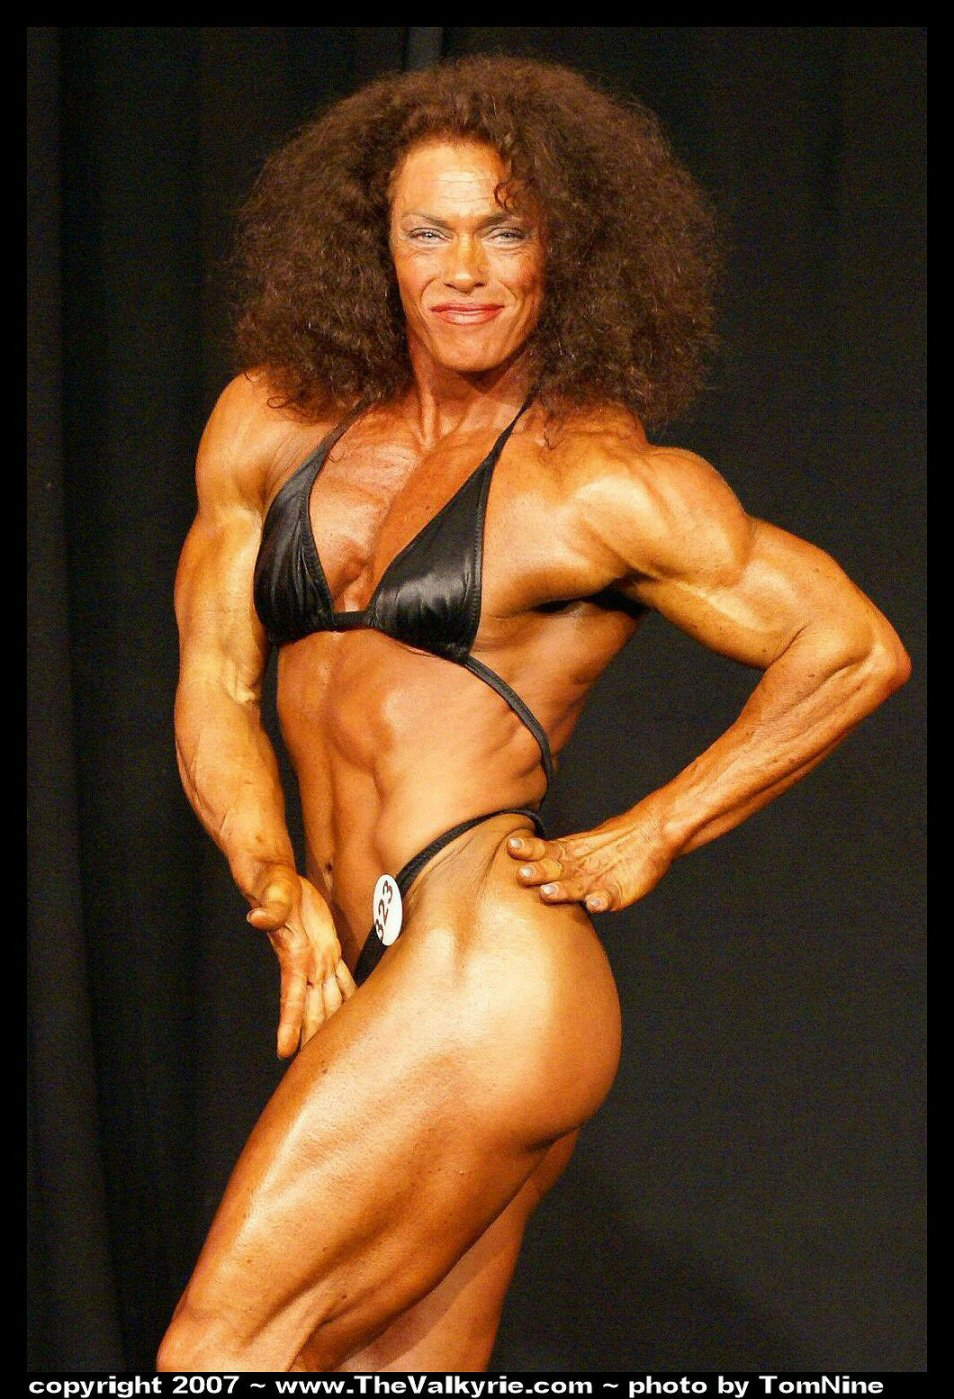 Misc Bodybuilding Gallery 51 results for misc bodybuilding. kate baird